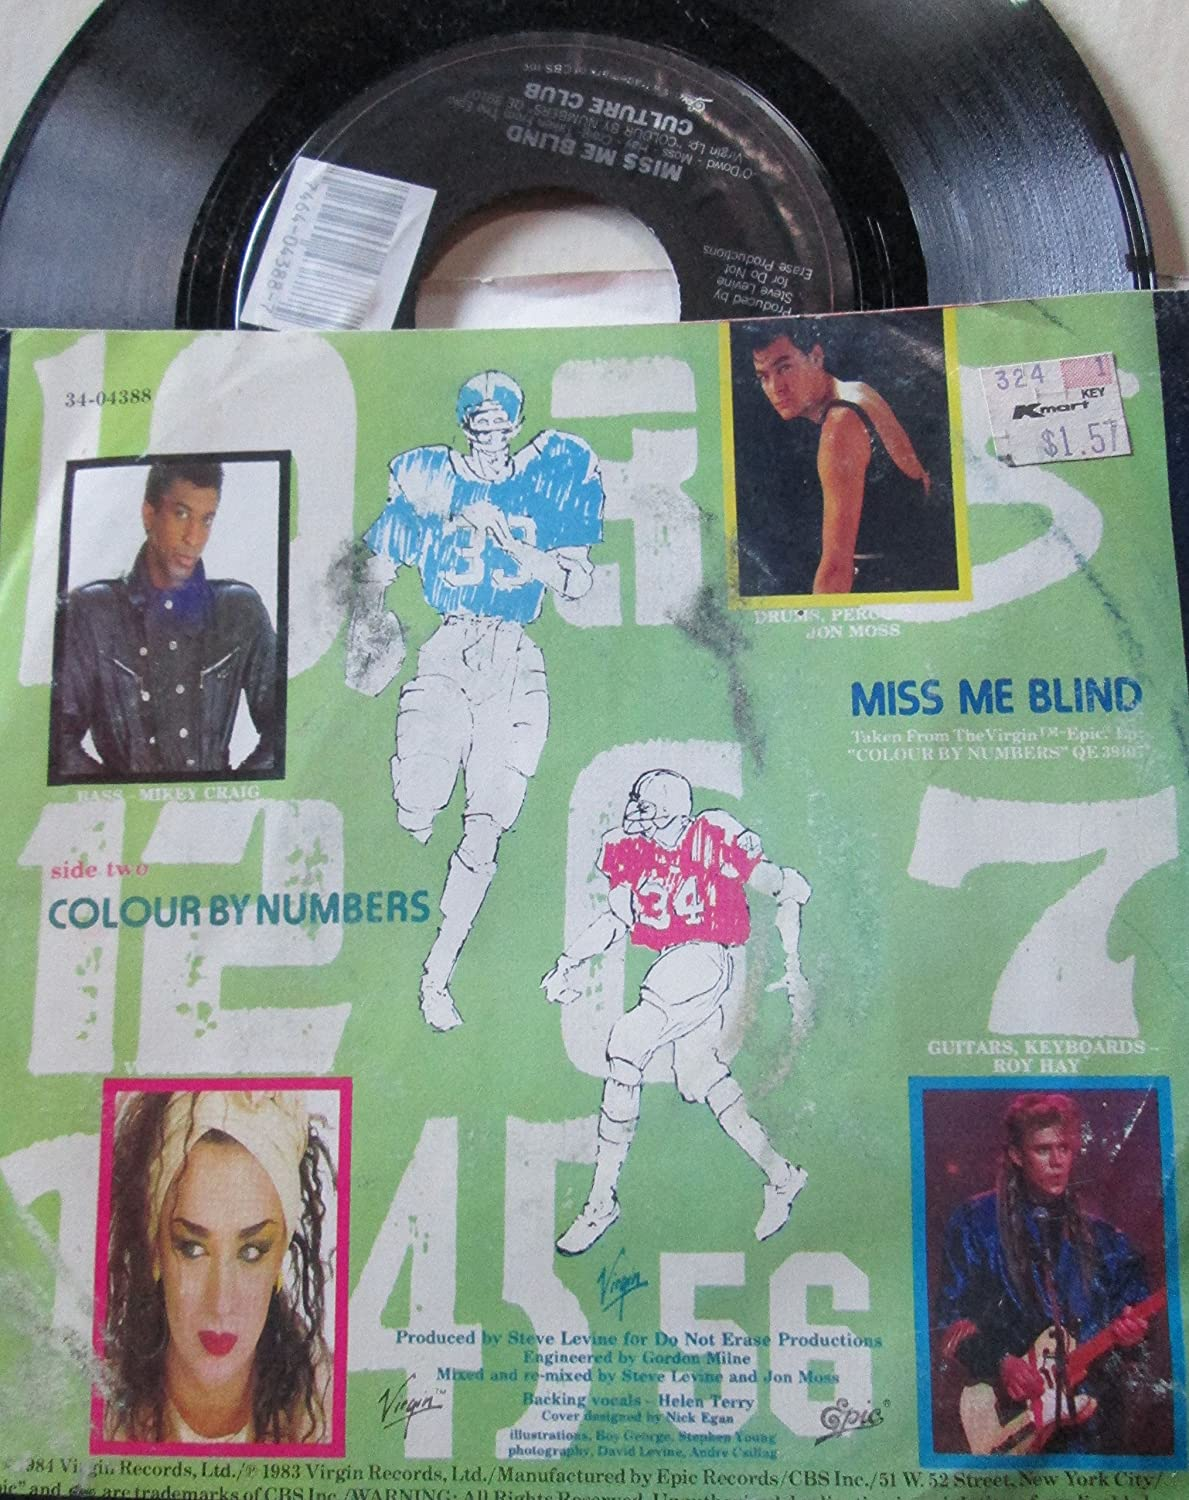 Culture Club - CULTURE CLUB 45 RPM Miss Me Blind / Colour By Numbers ...